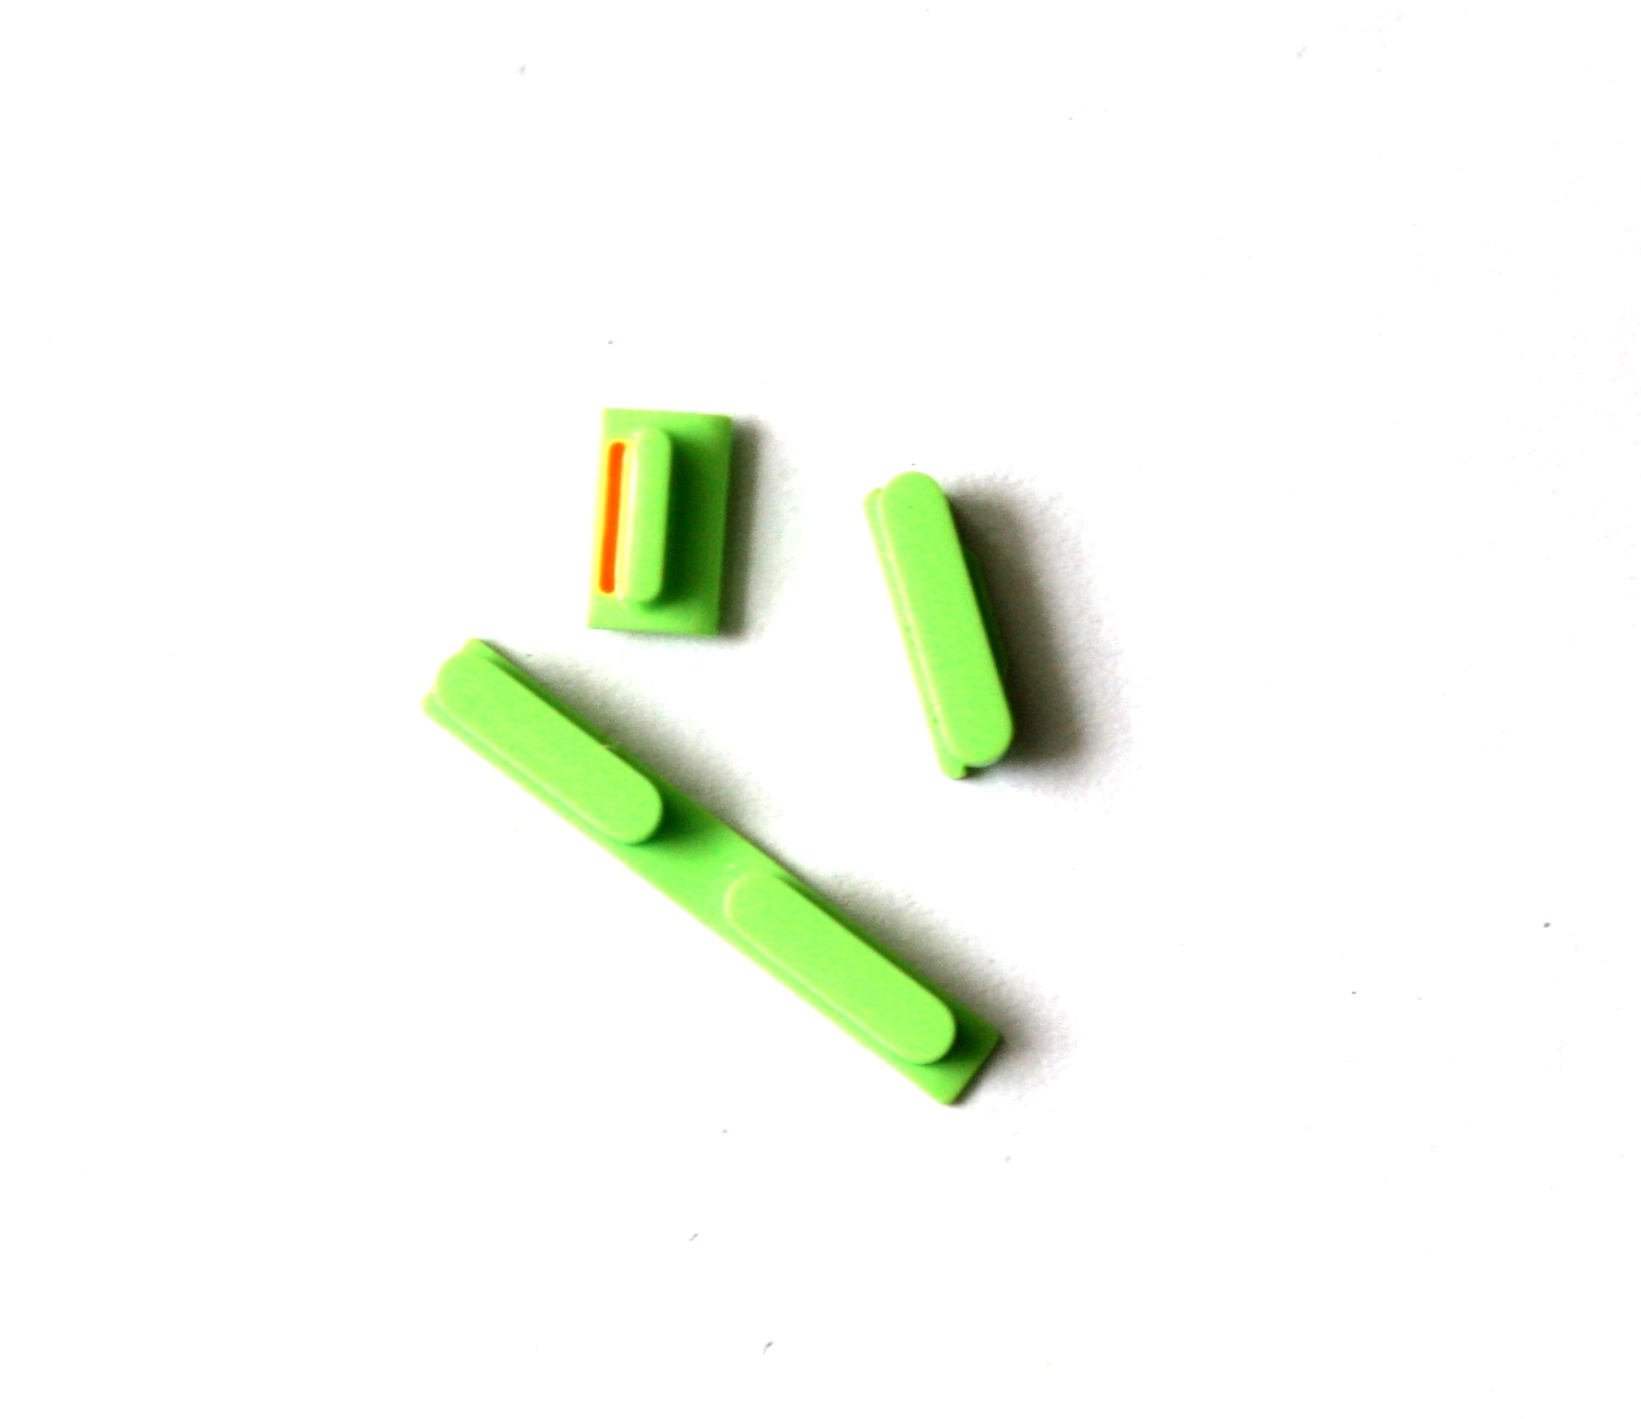 iPhone5C volume key+power key+mute key green